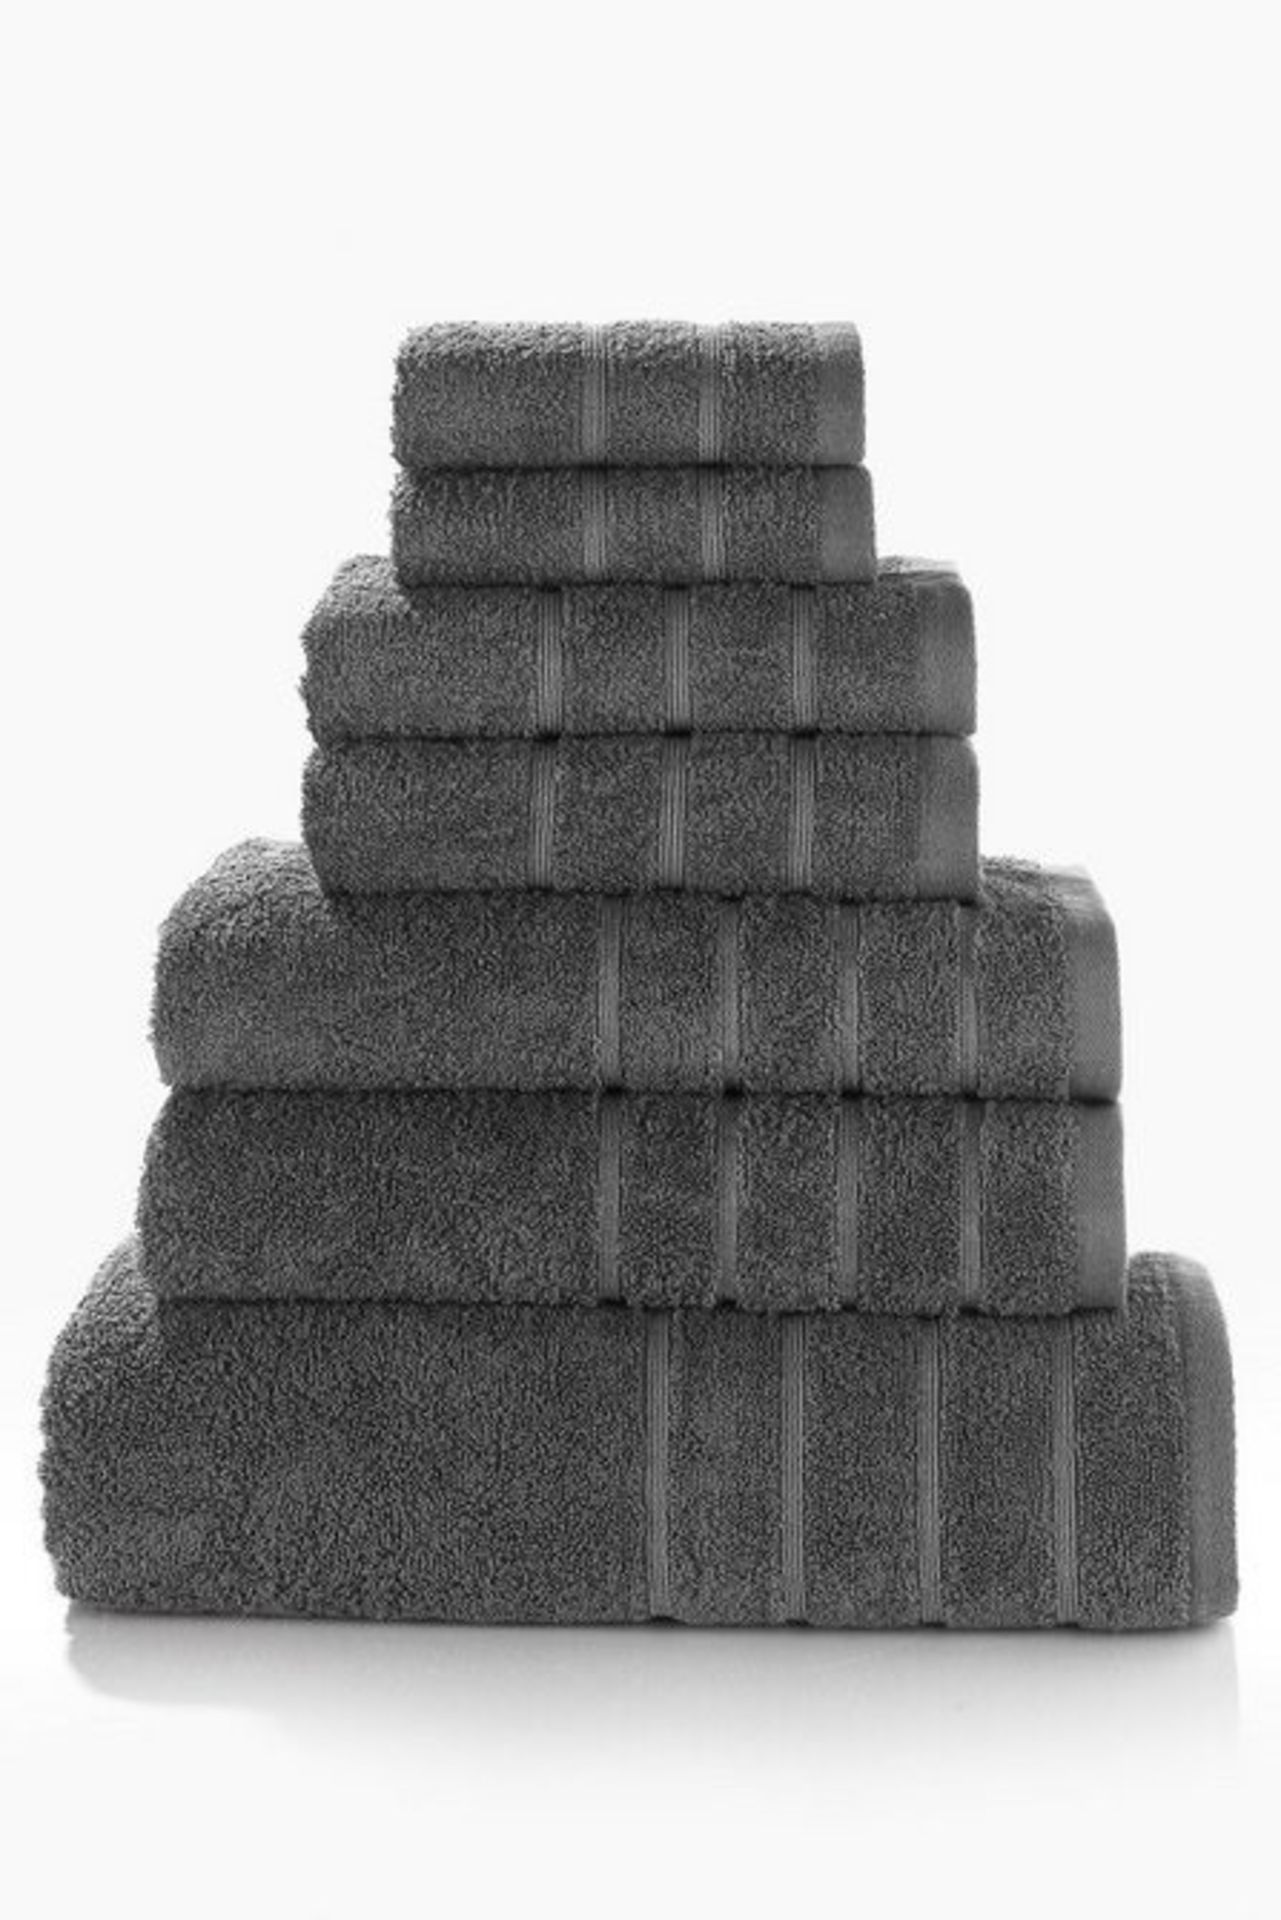 Lot 122 - 1 BAGGED 7 PIECE TOWEL BALE IN CHARCOAL (PUBLIC VIEWING AVAILABLE)